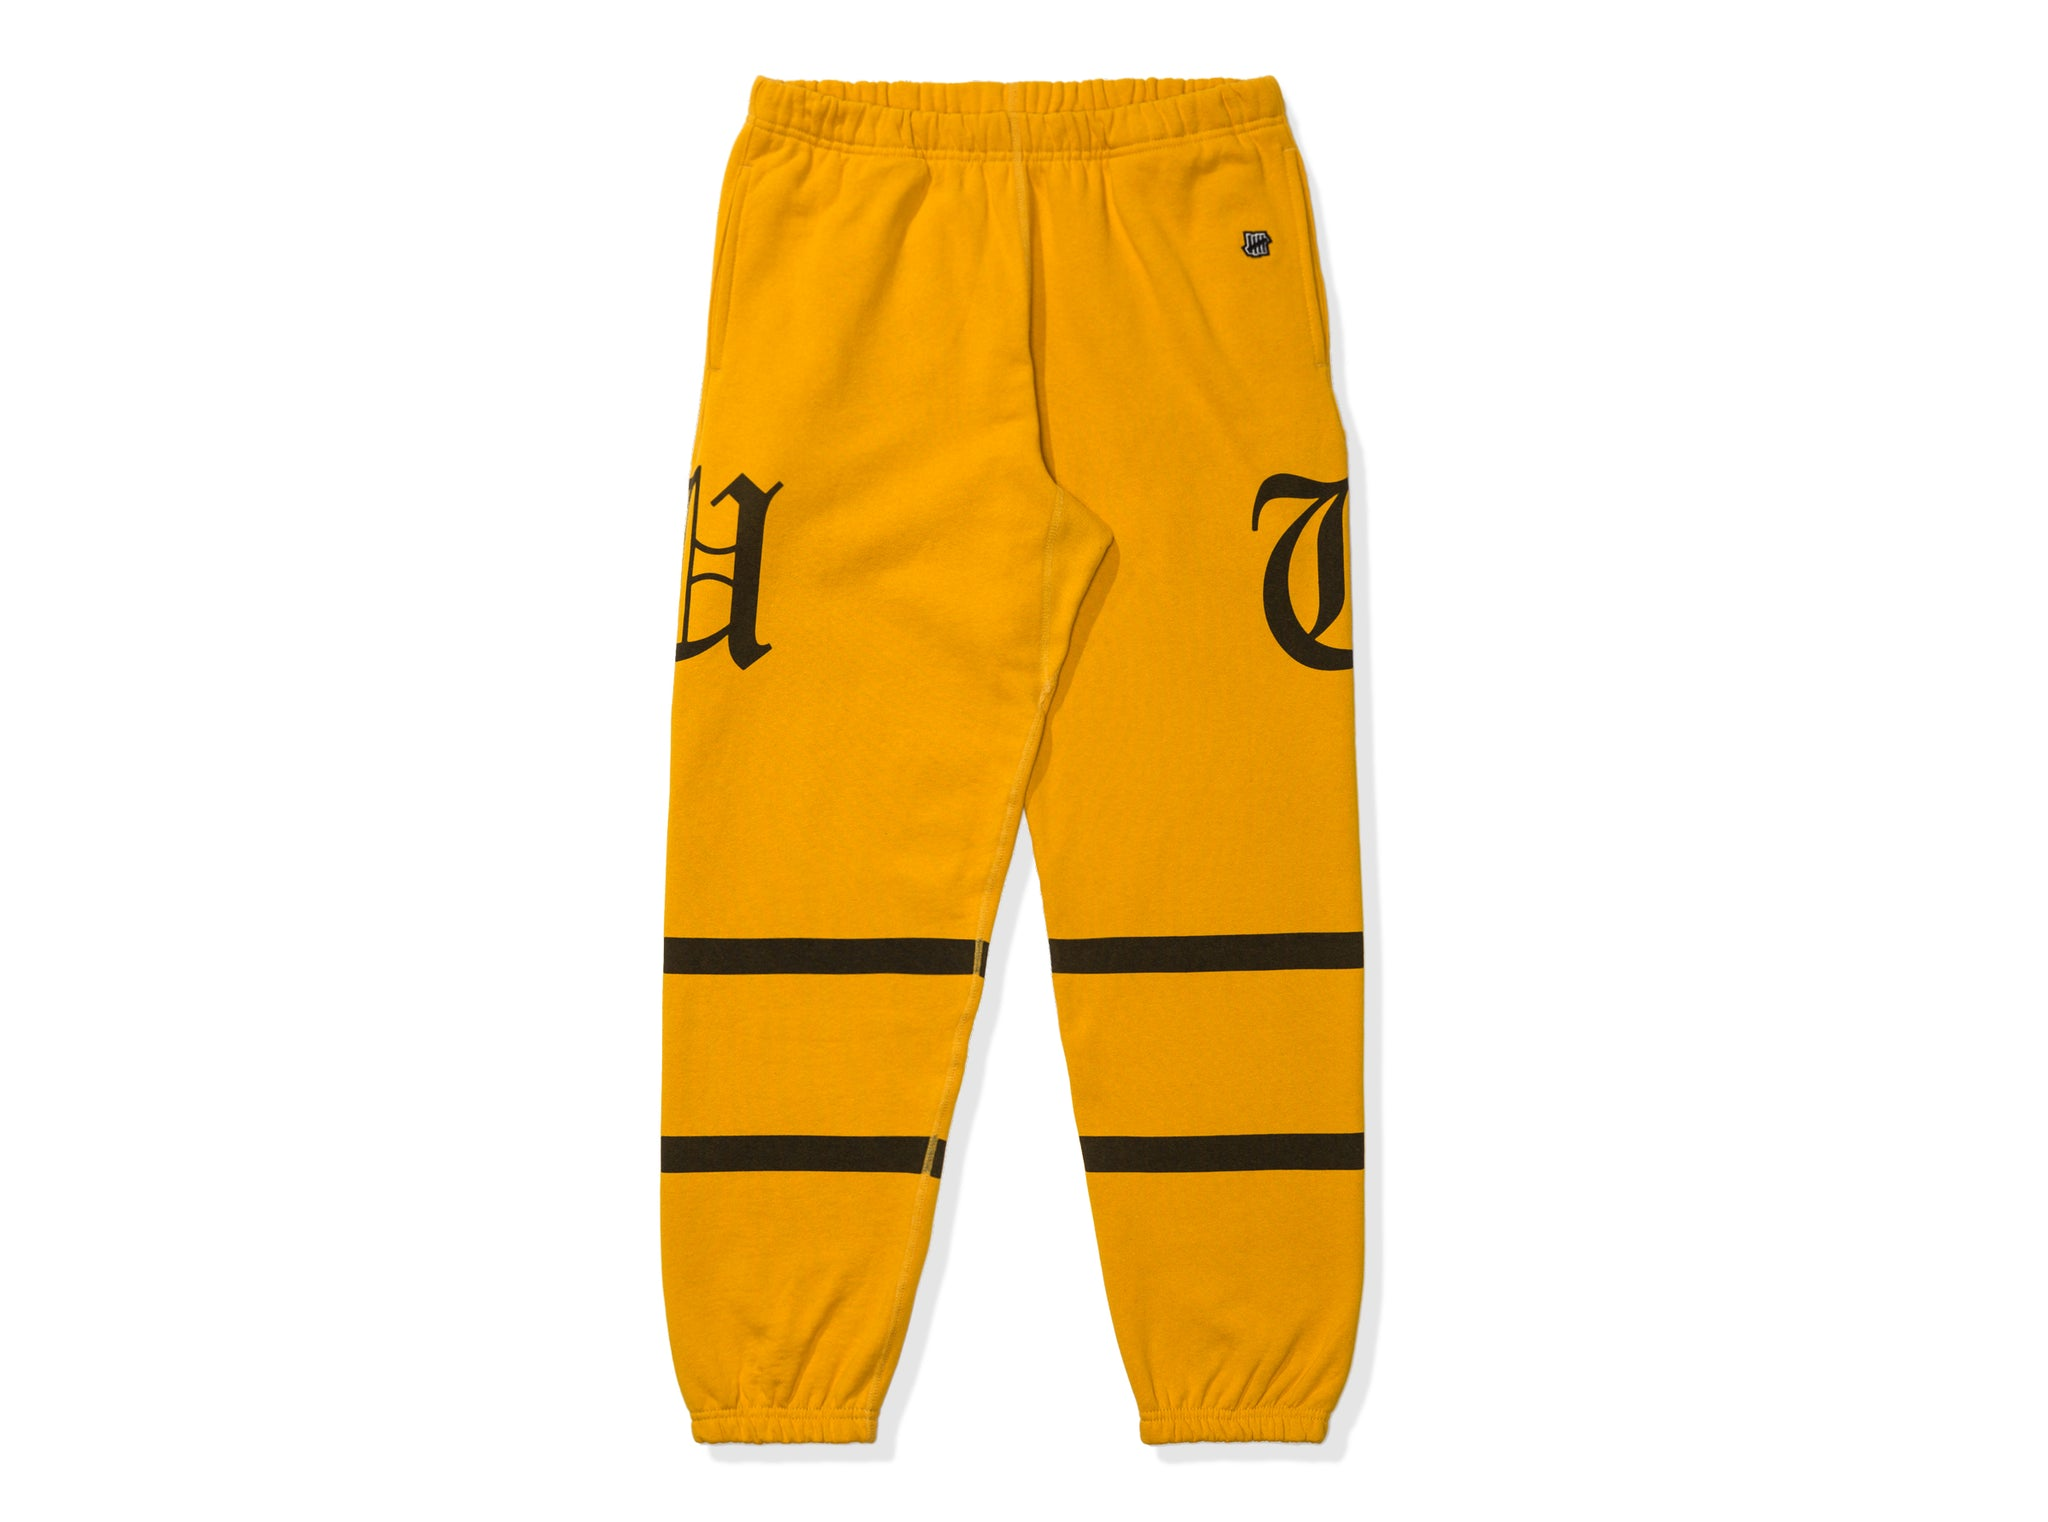 UNDEFEATED O.E. SWEATPANT